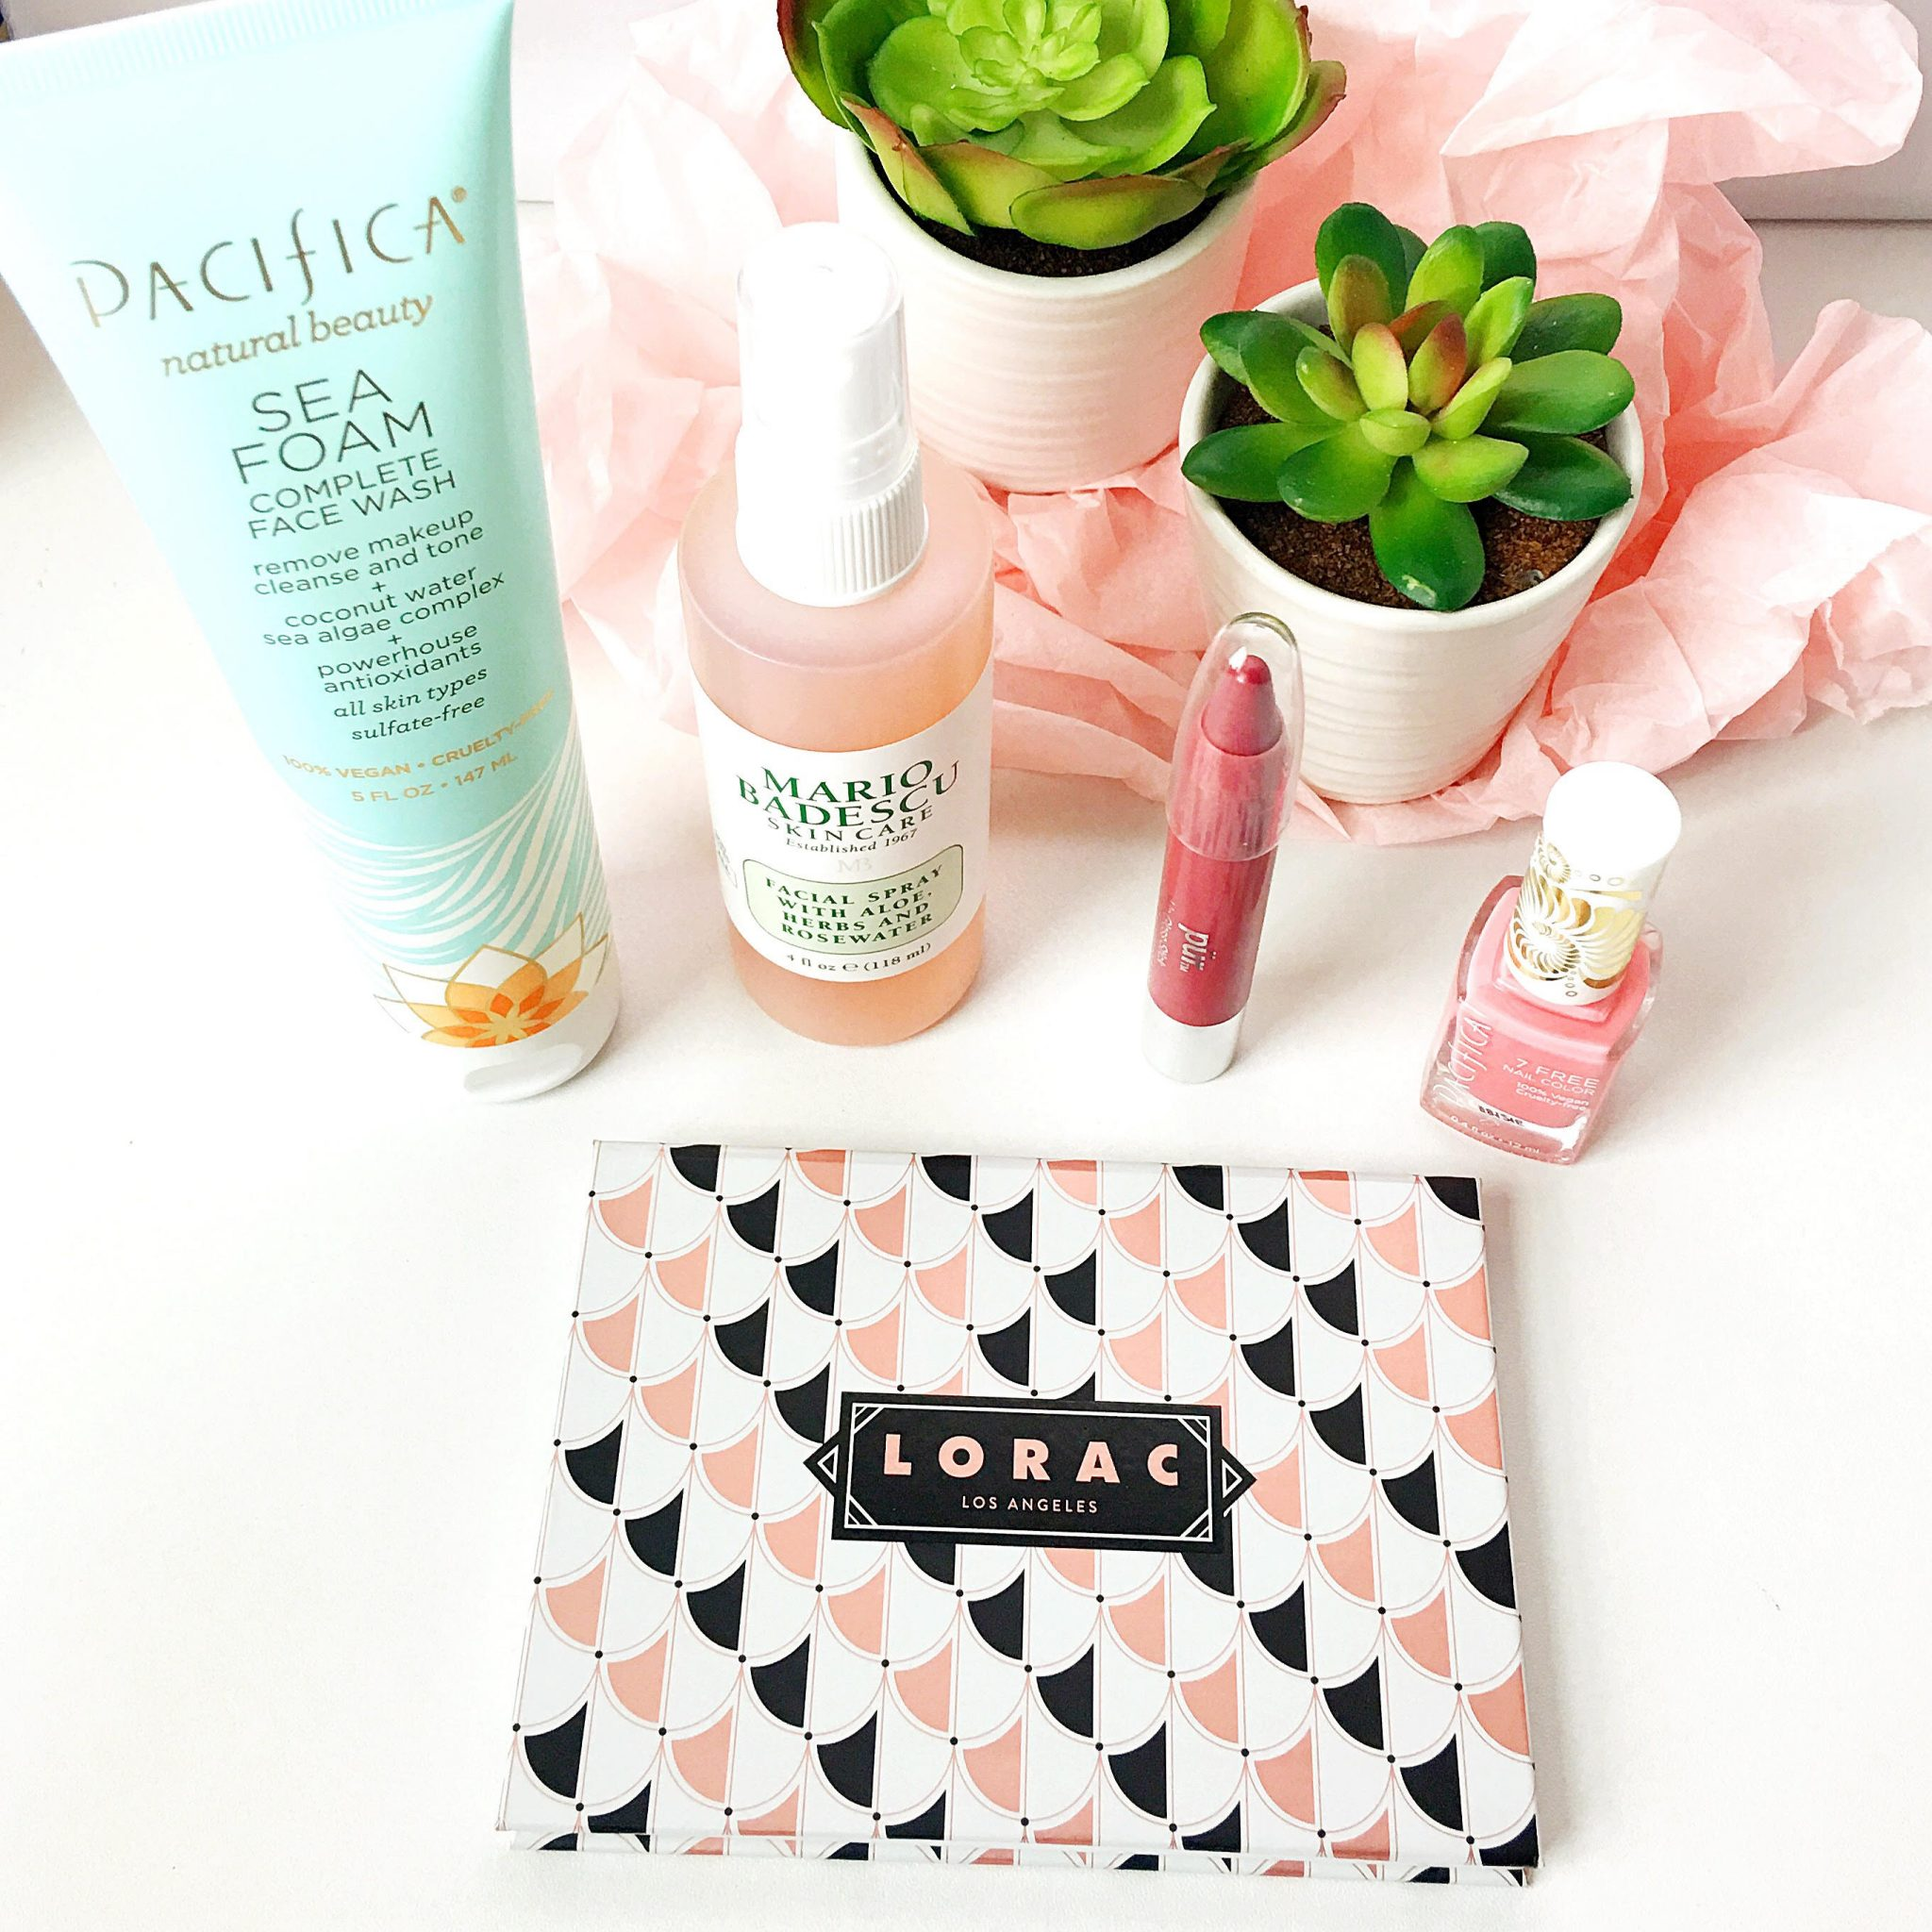 Handpicked Beauty Box Review & Unboxing: Perfect Spring Beauty Refresh! graphic